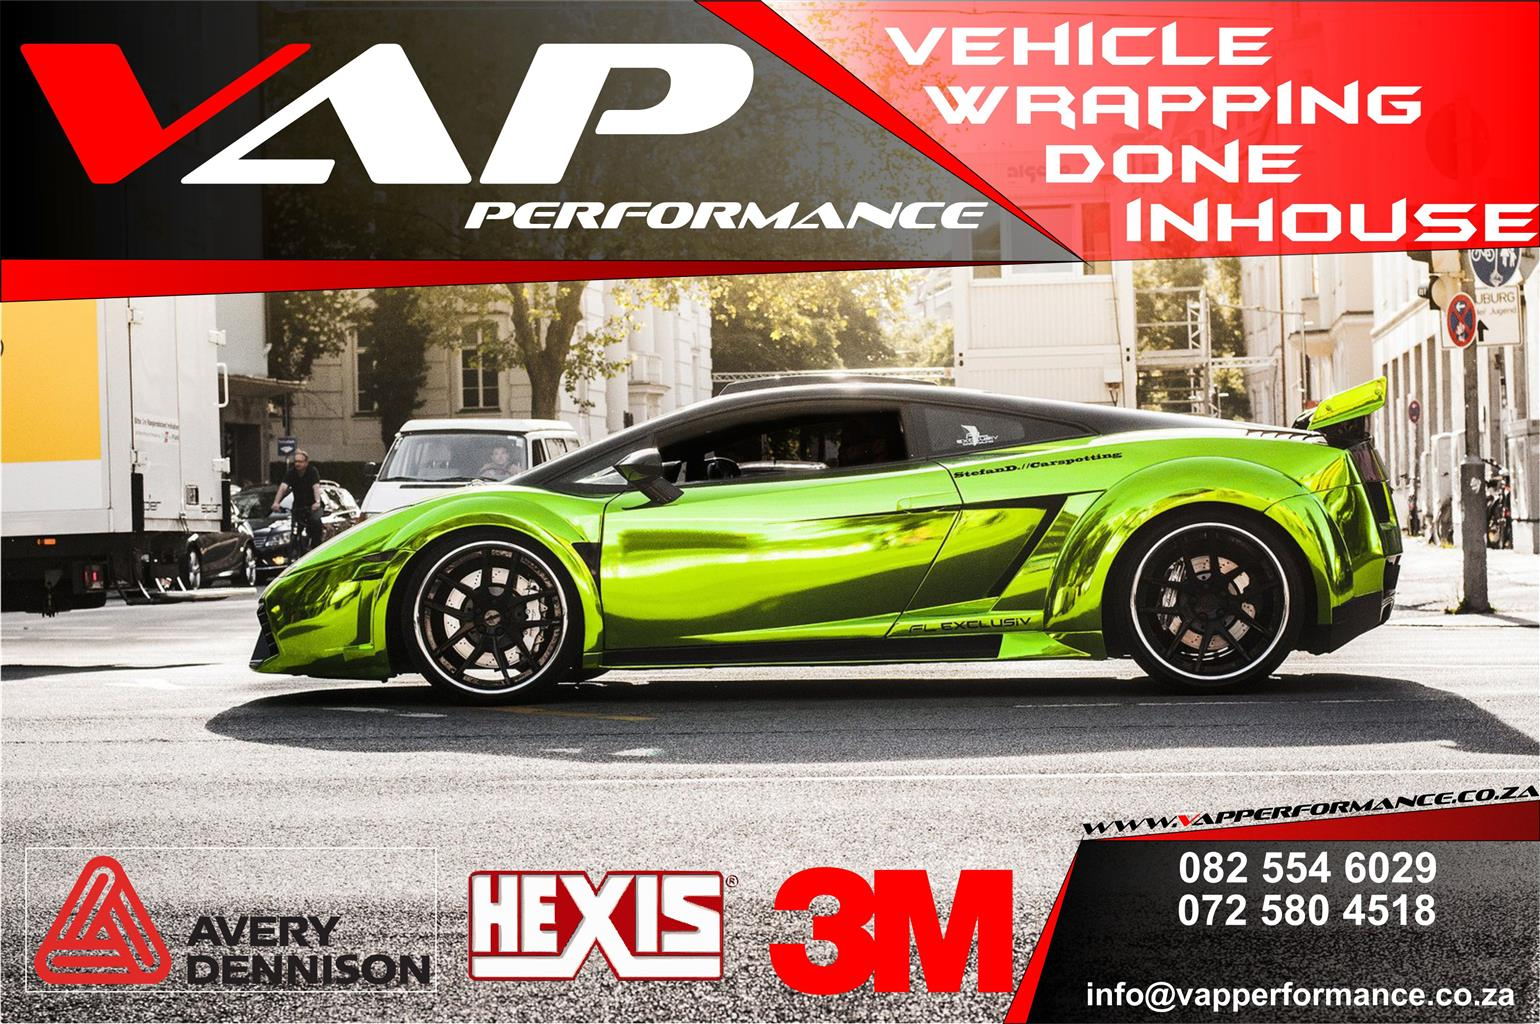 Vehicle Wrapping / Automotive Wrapping